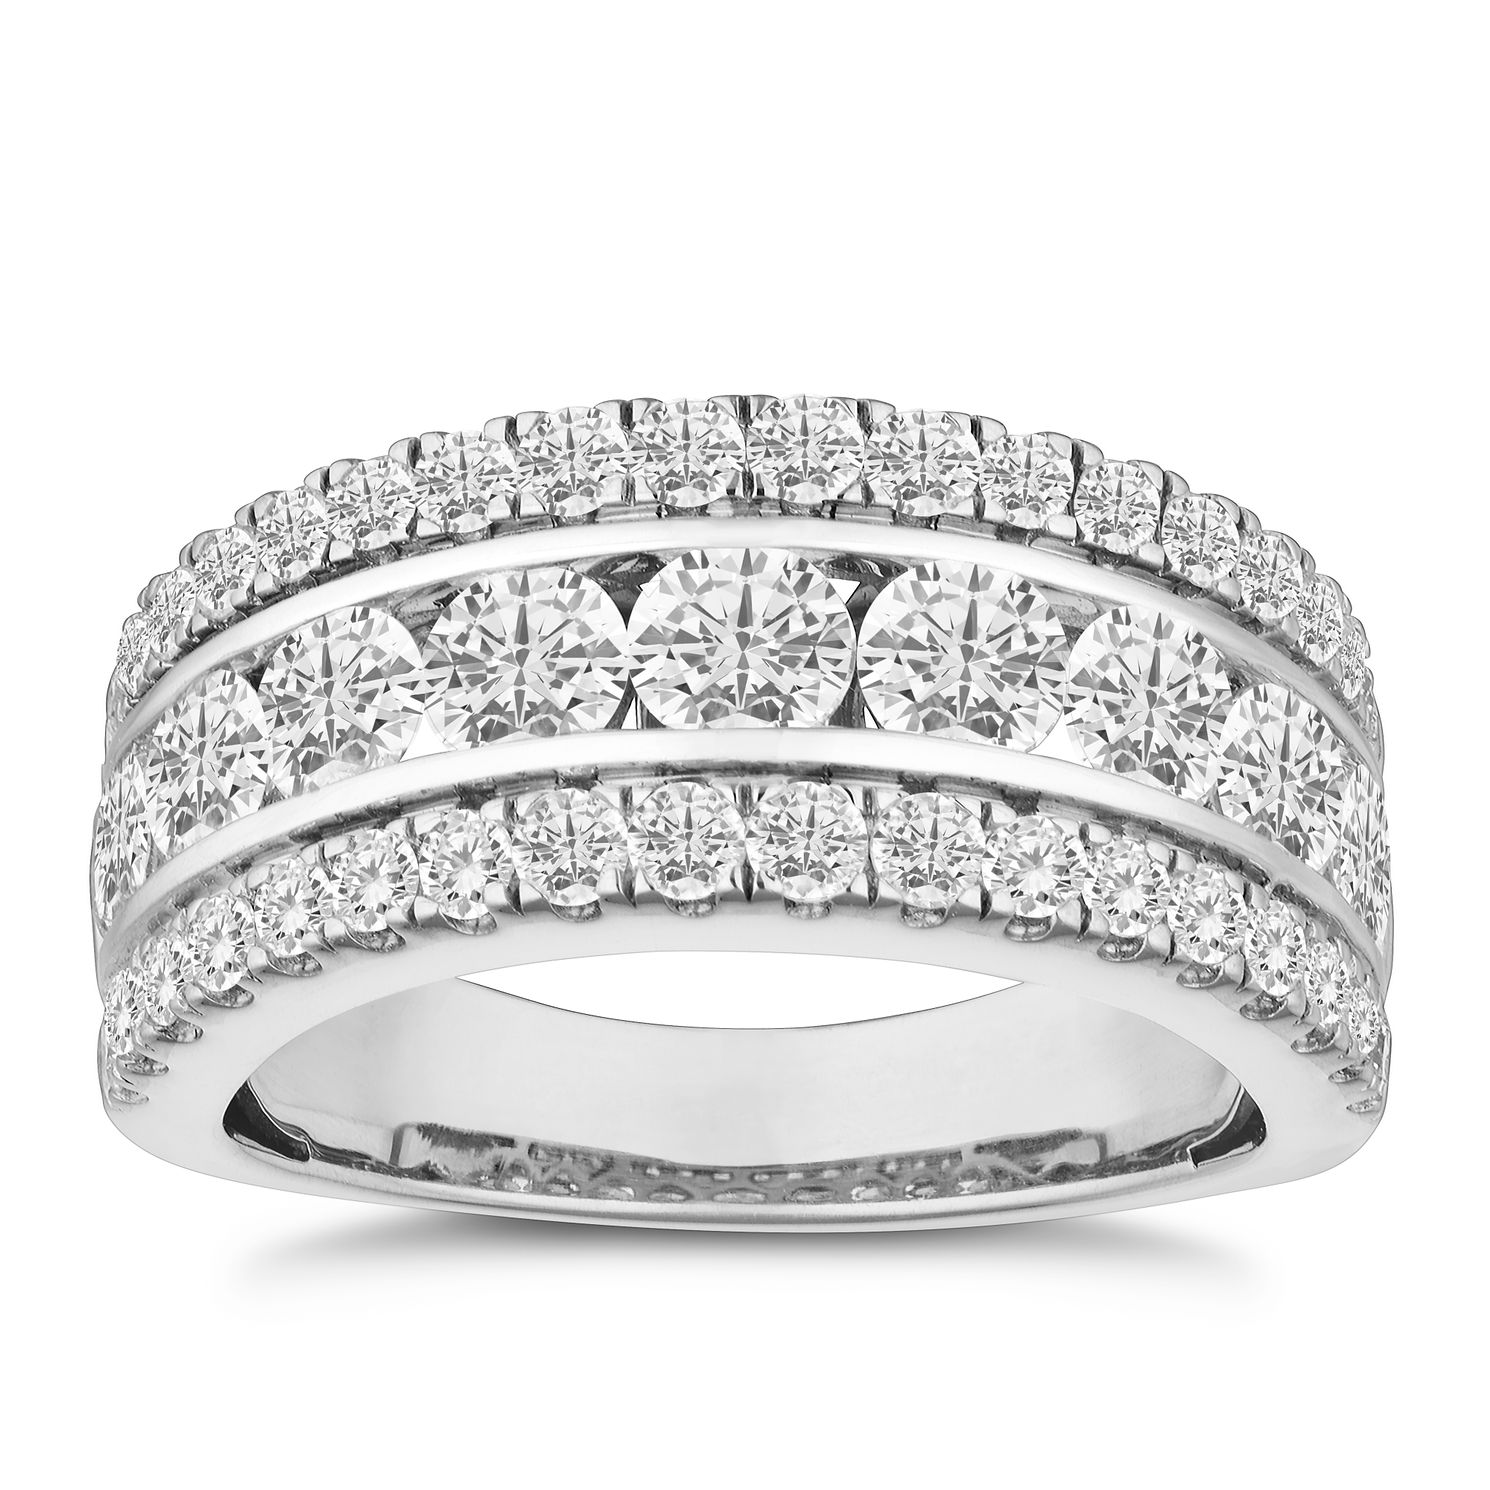 18ct White Gold 2ct Diamond Three Row Eternity Ring - Product number 9747117